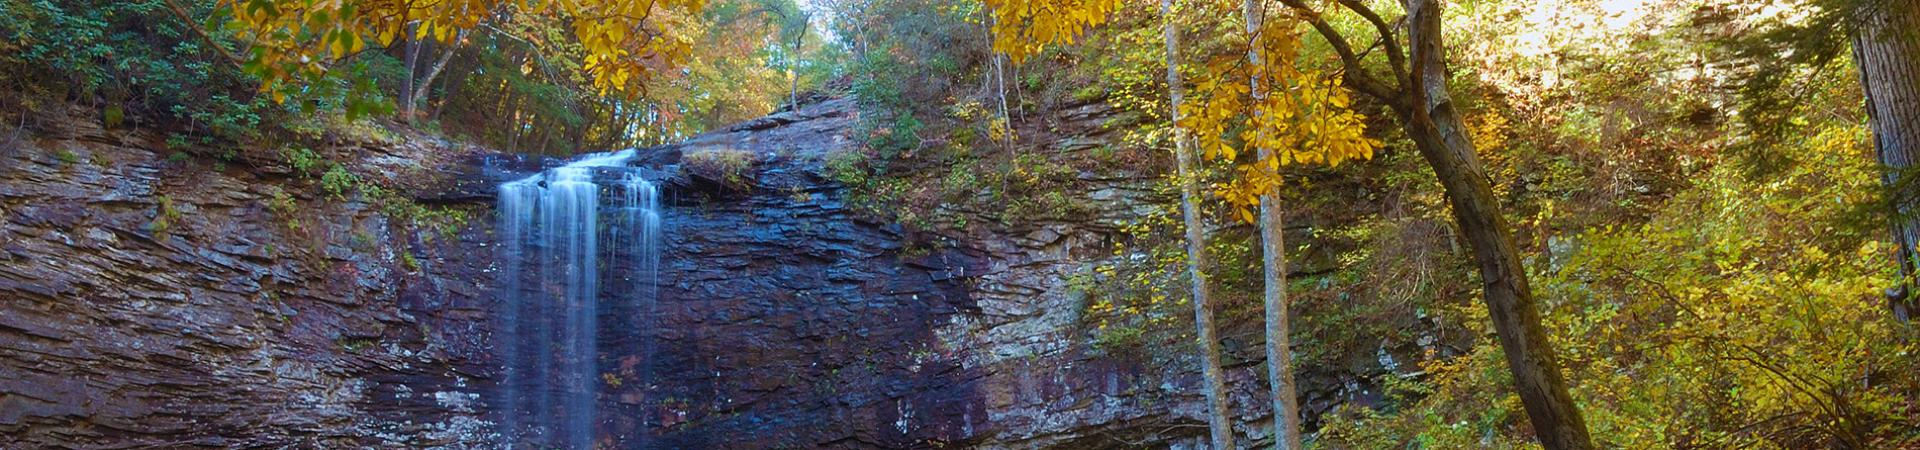 Cloudland canyon state park state parks historic sites publicscrutiny Image collections